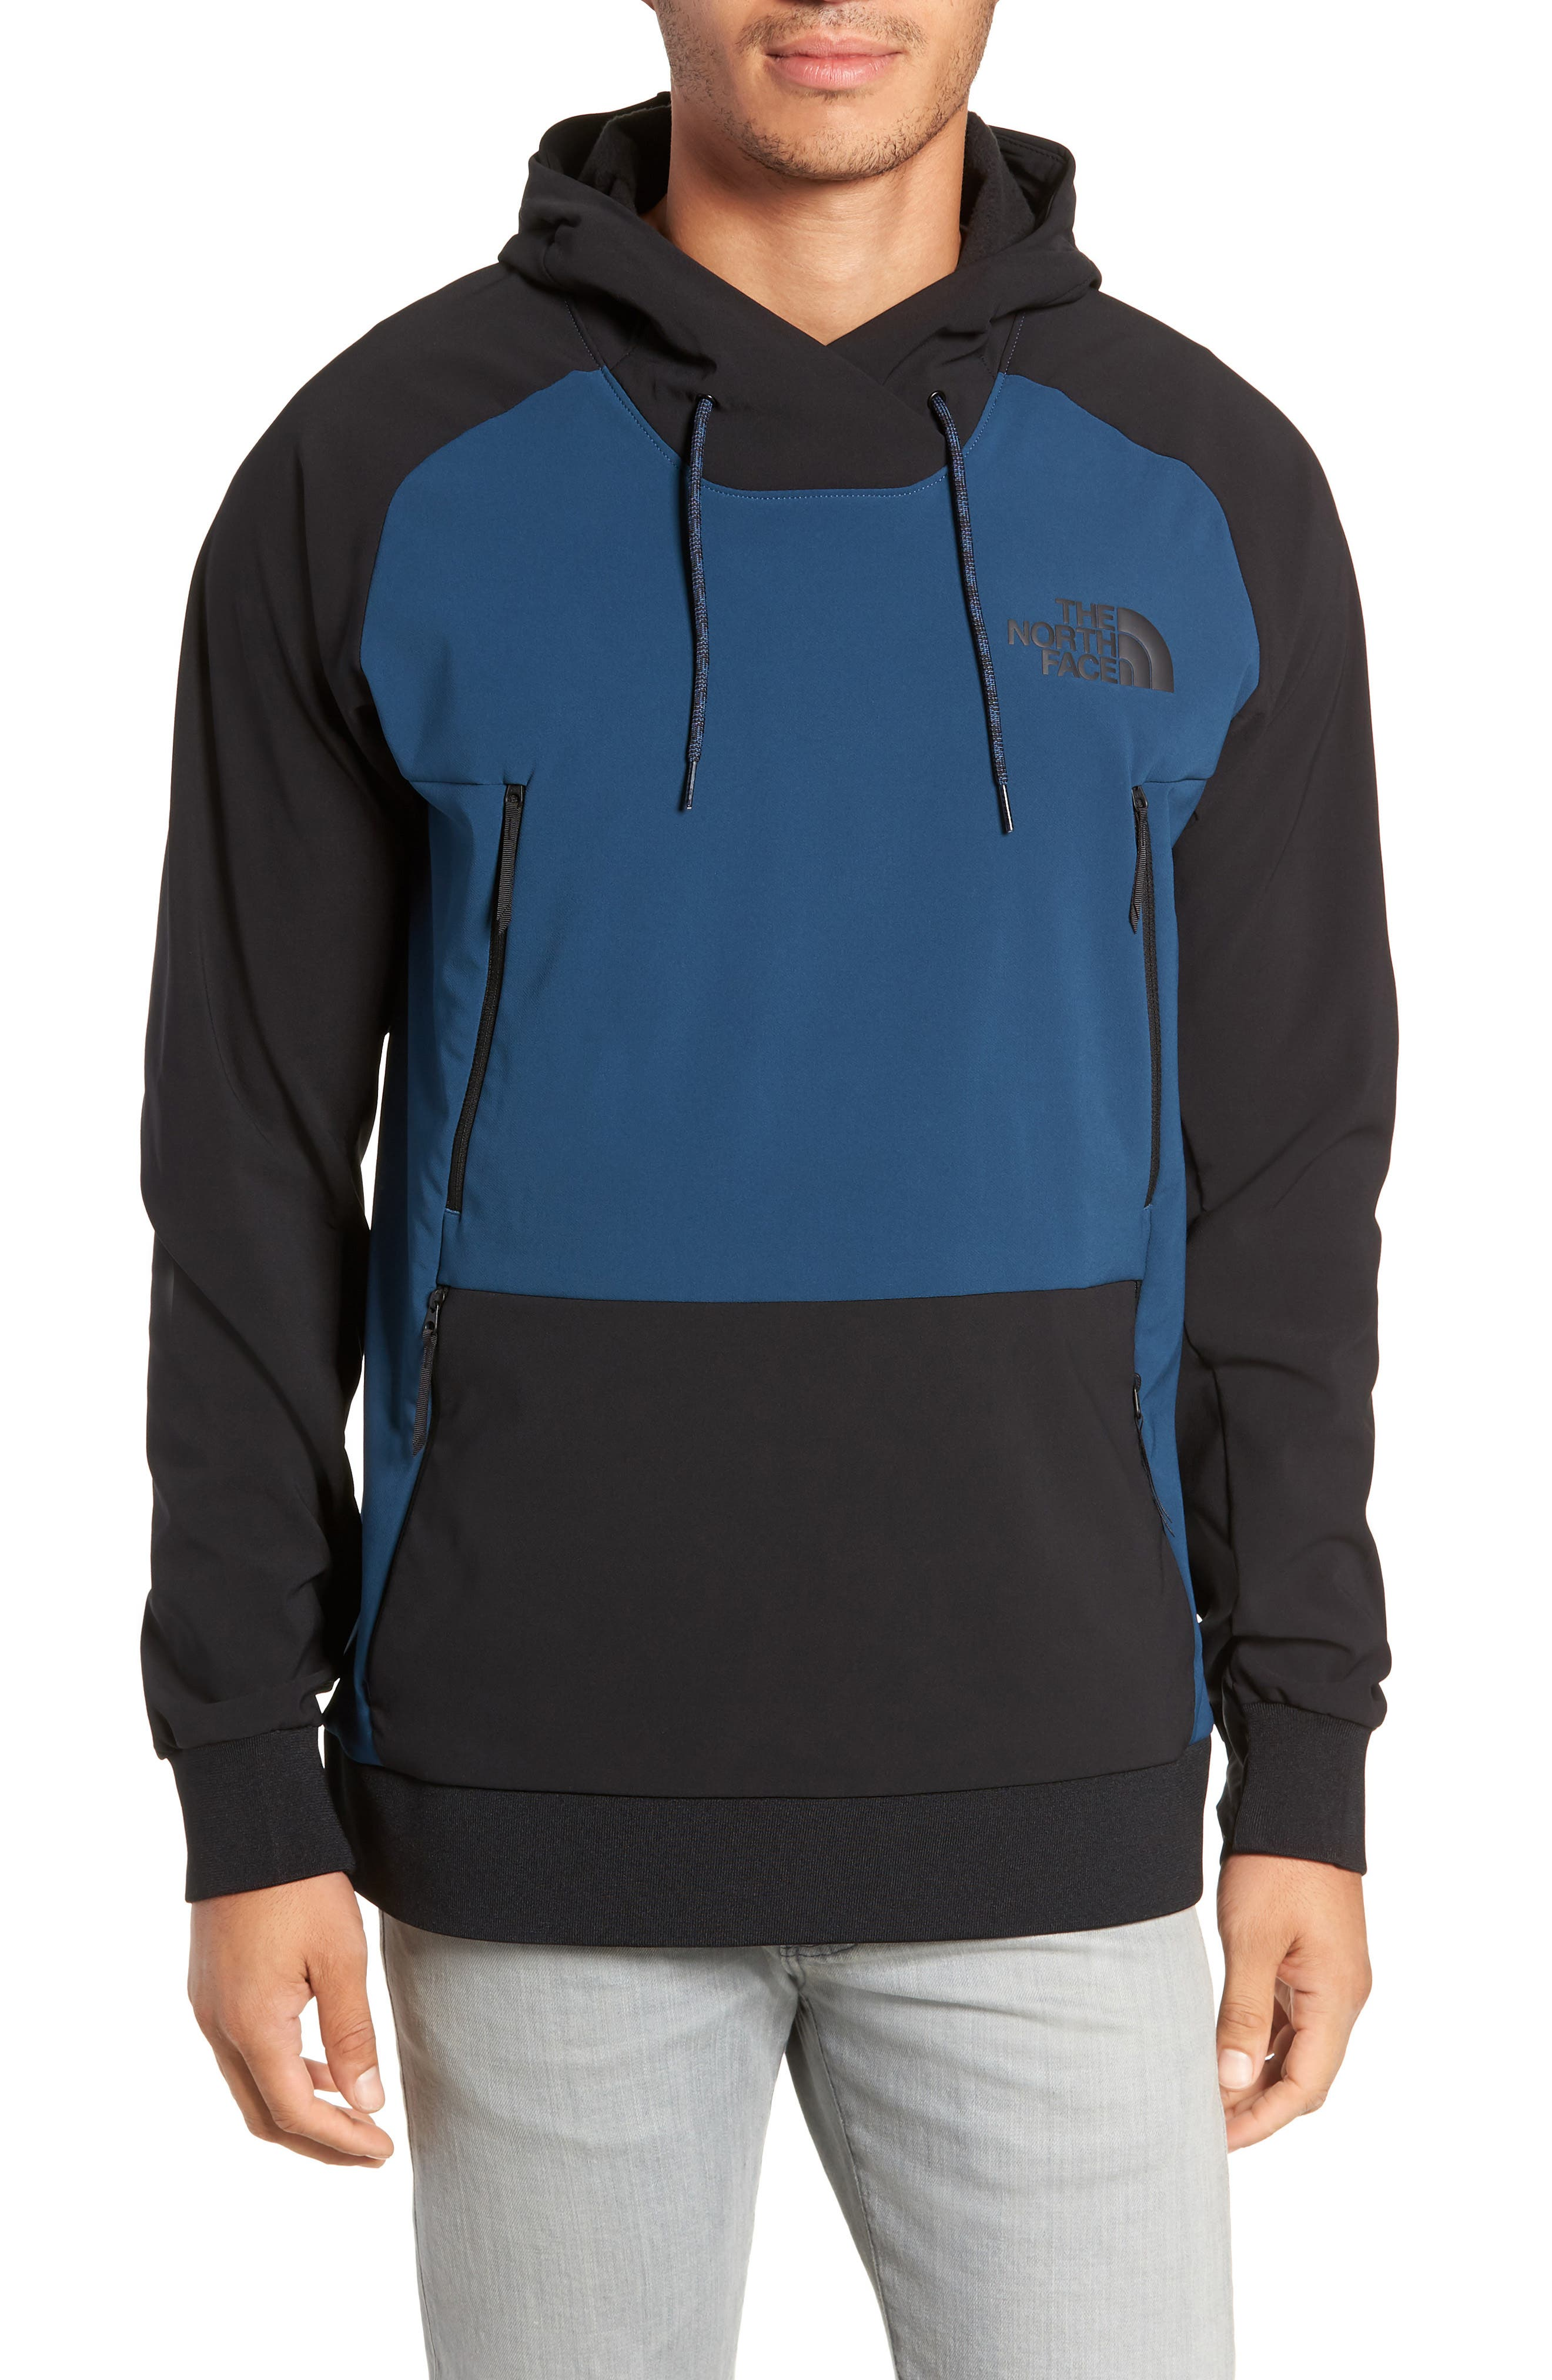 Tekno Pullover Hoodie,                             Main thumbnail 1, color,                             BLUE WING TEAL/ TNF BLACK